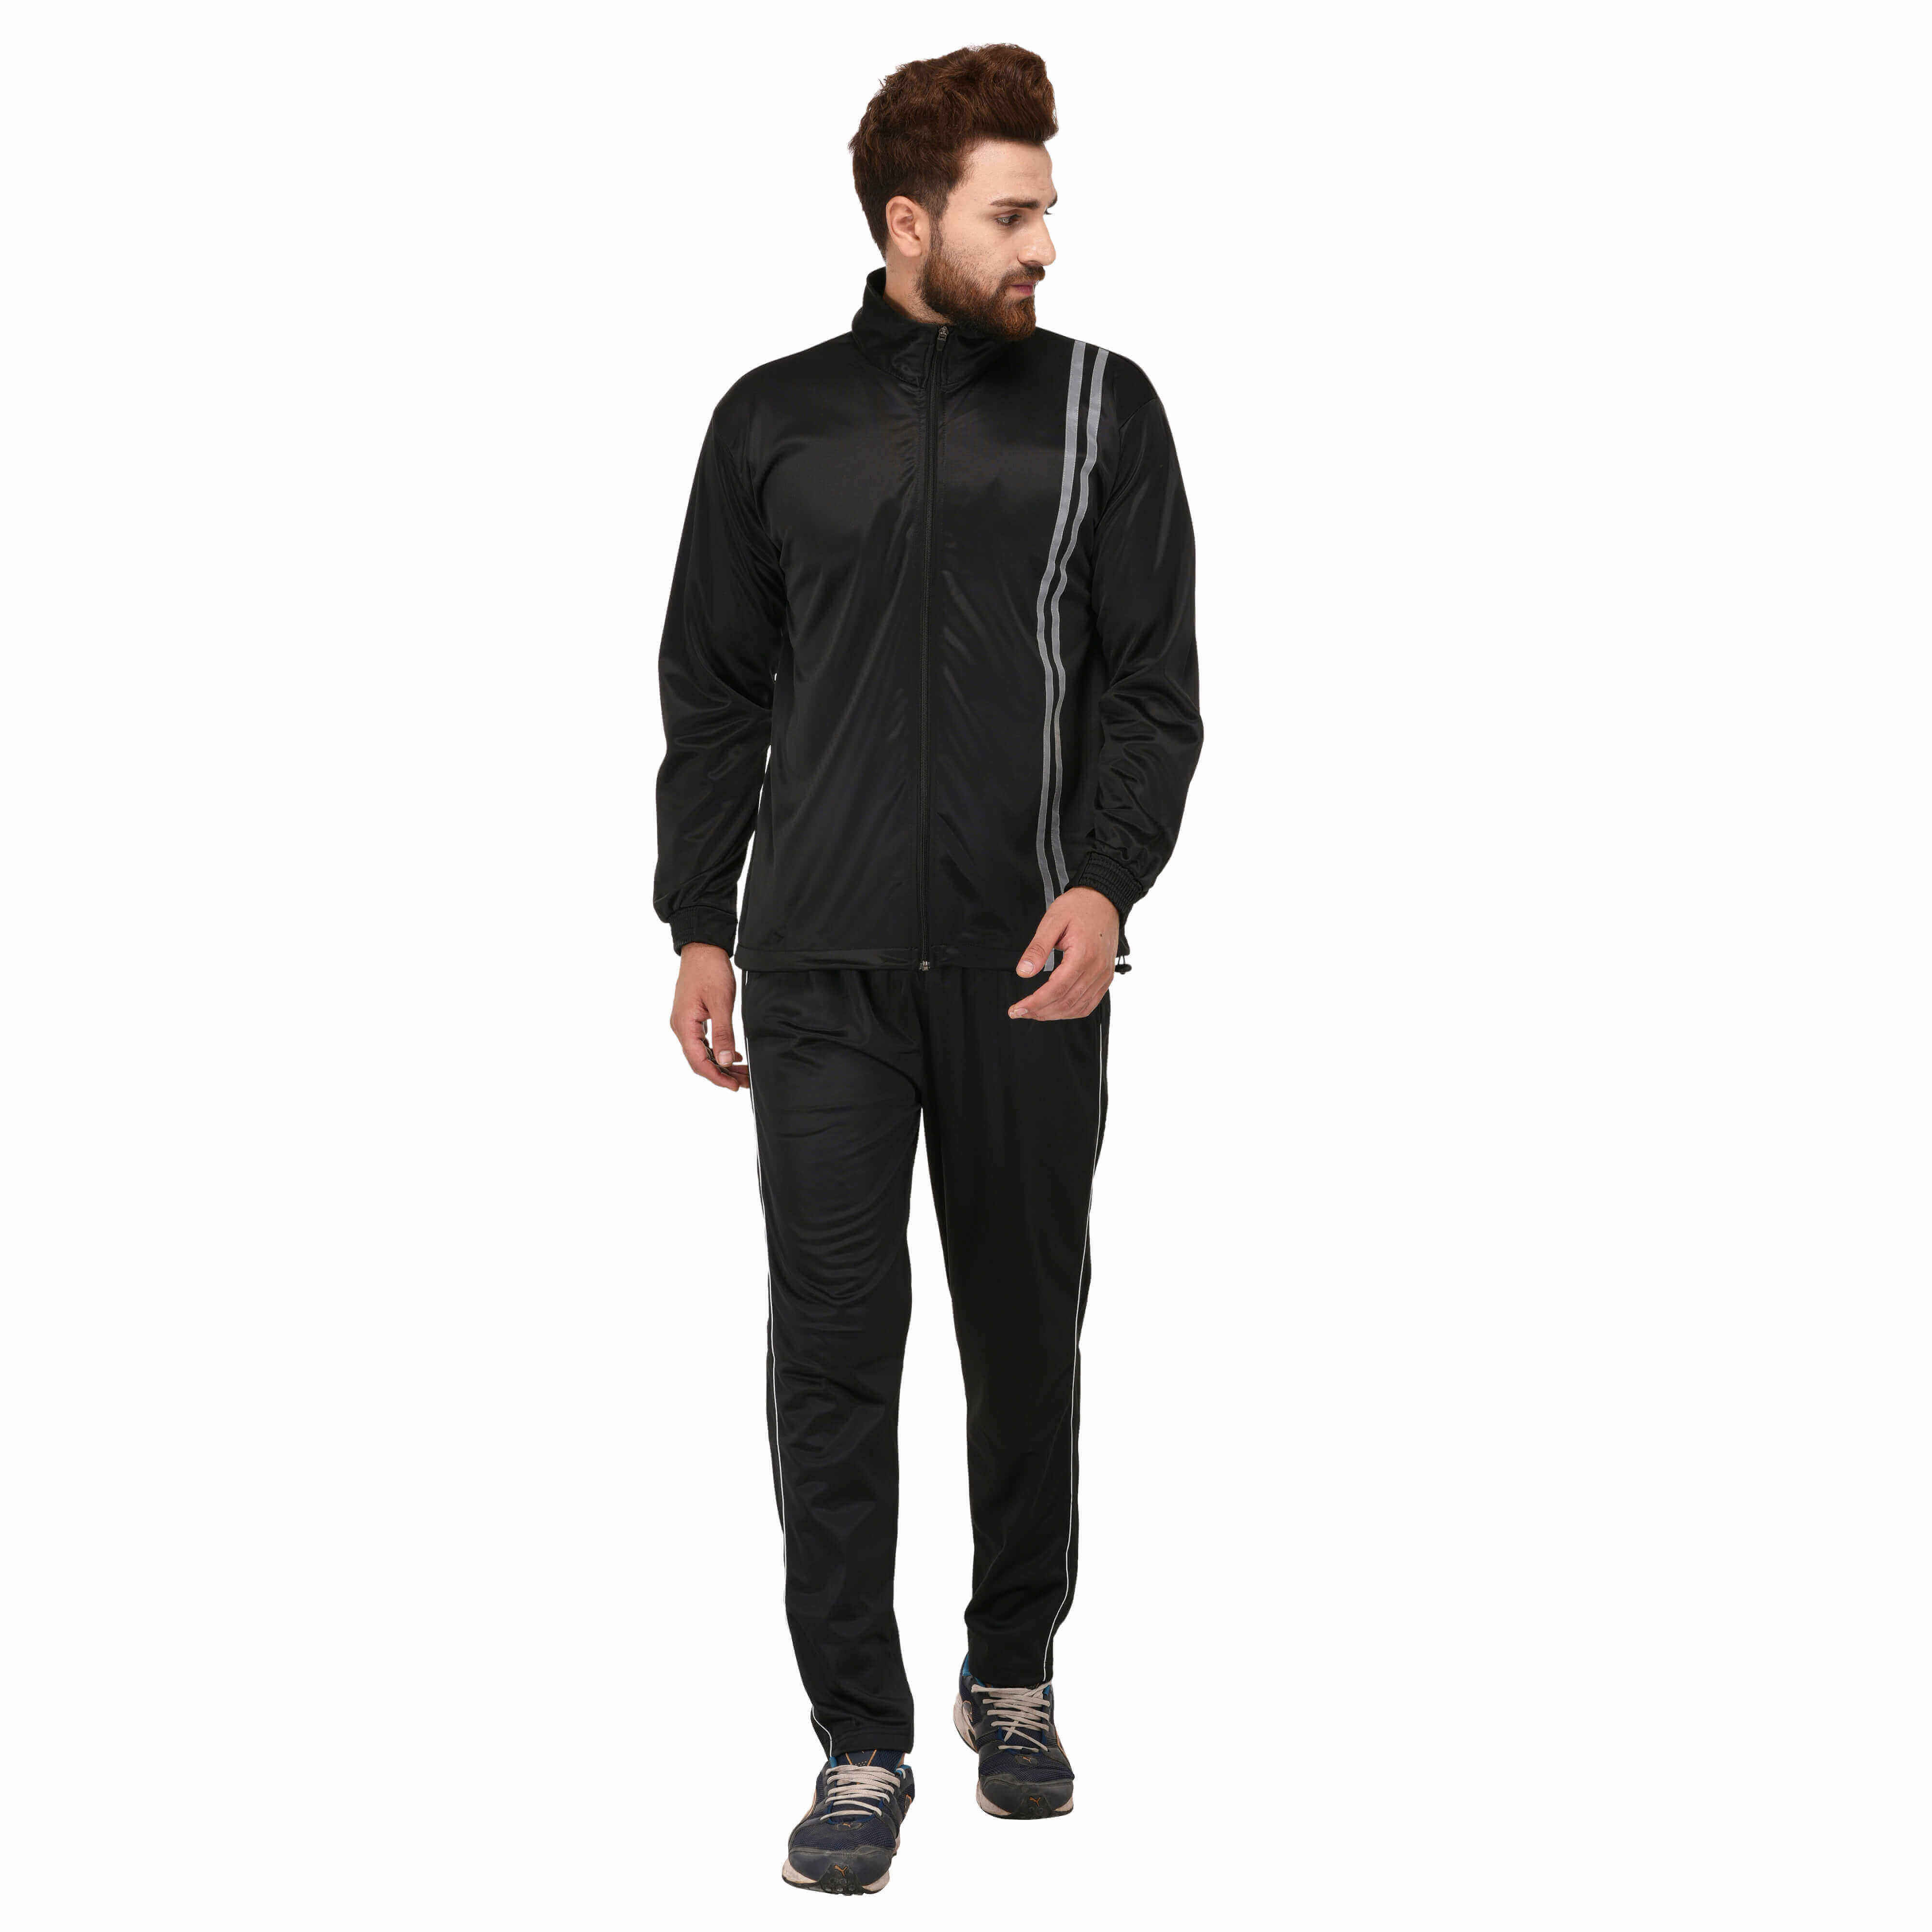 Mens Tracksuit Set Manufacturers